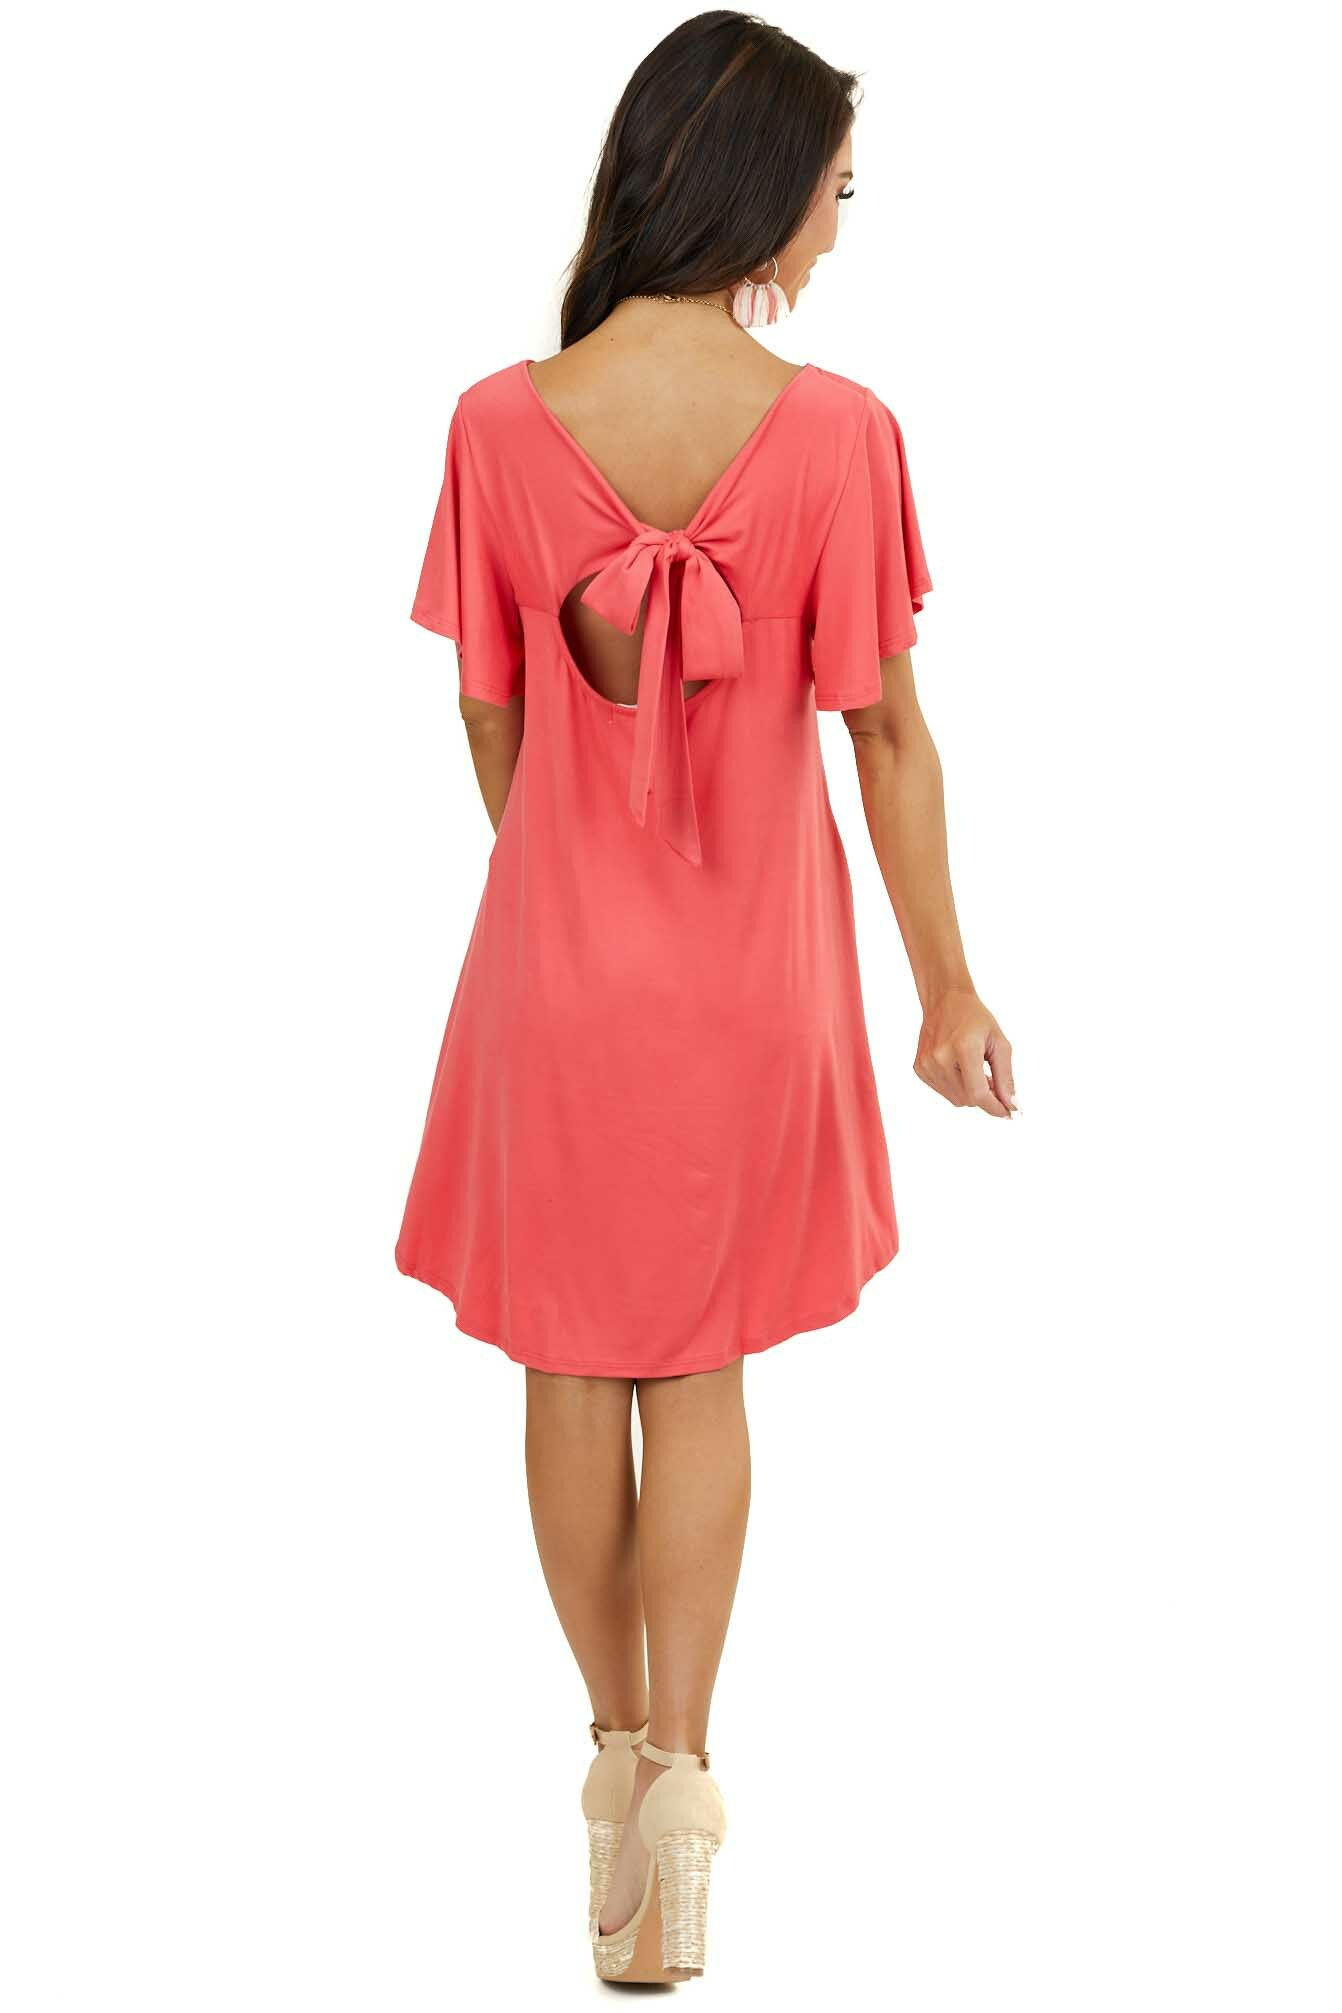 Deep Coral Keyhole Back Dress with Tie Detail and Pockets